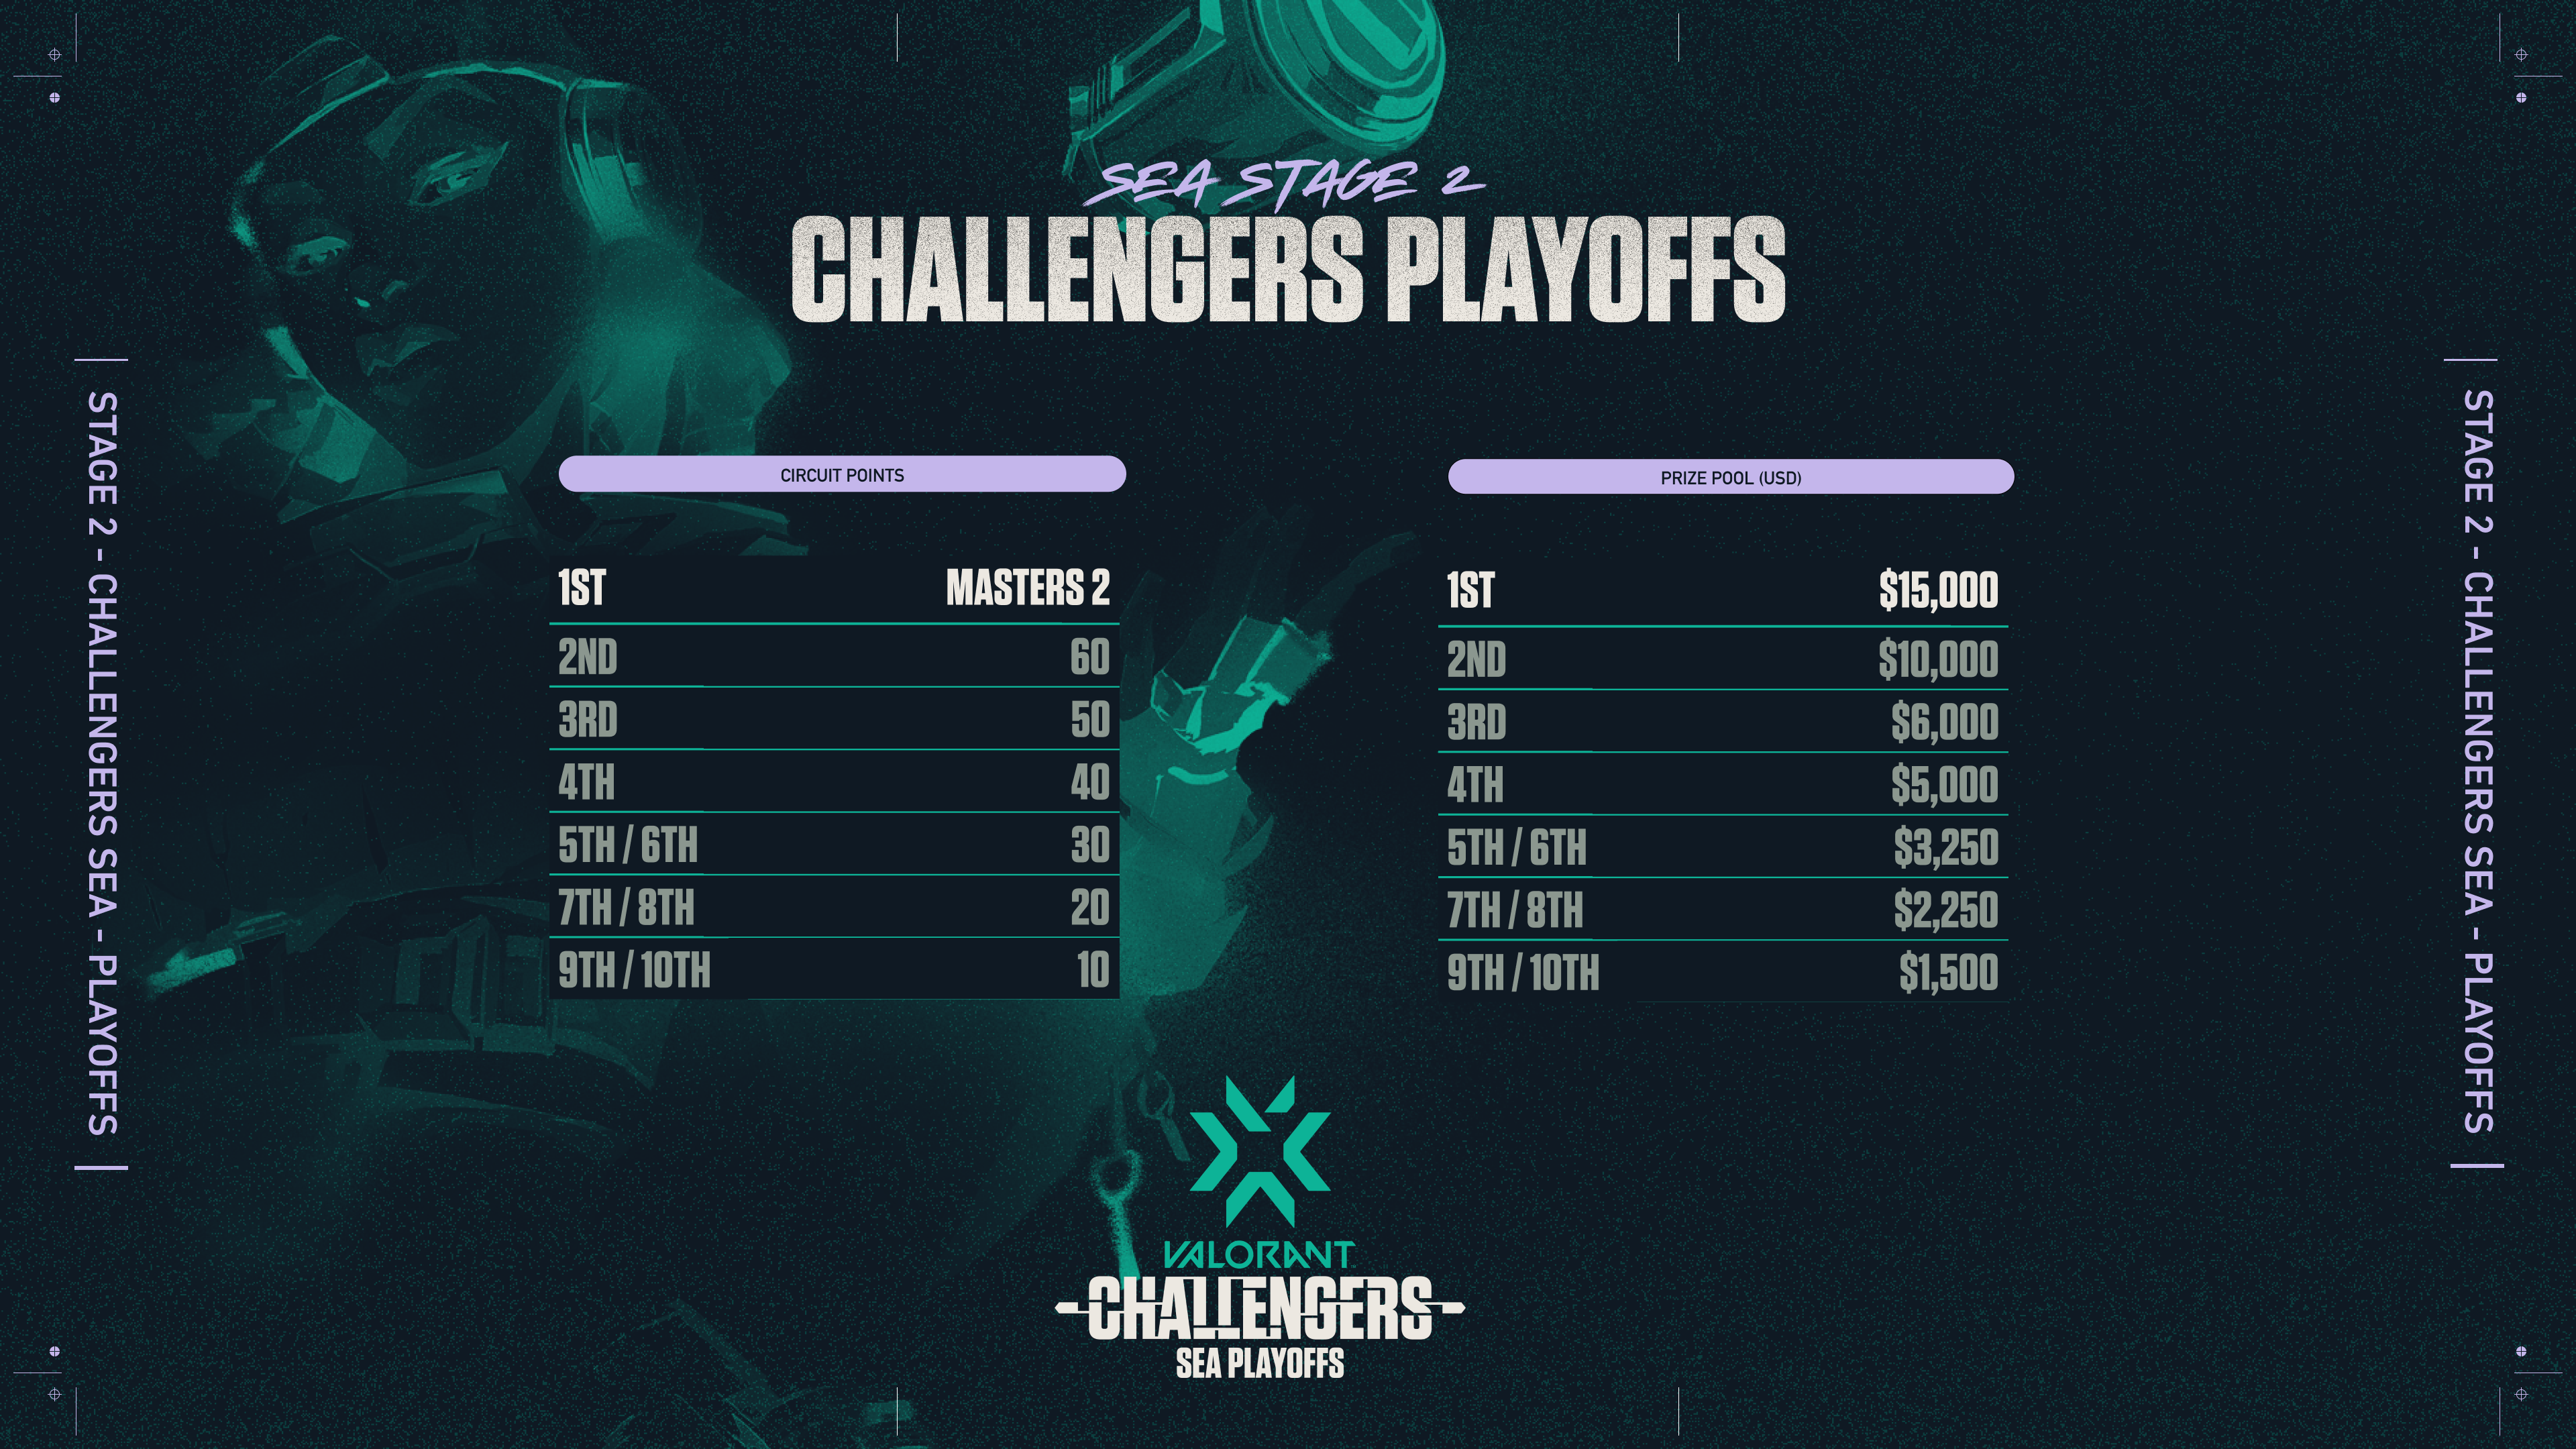 VCT_Challengers_SEA_Playoffs_-_Circuit_Points_and_Prize_Pool.png